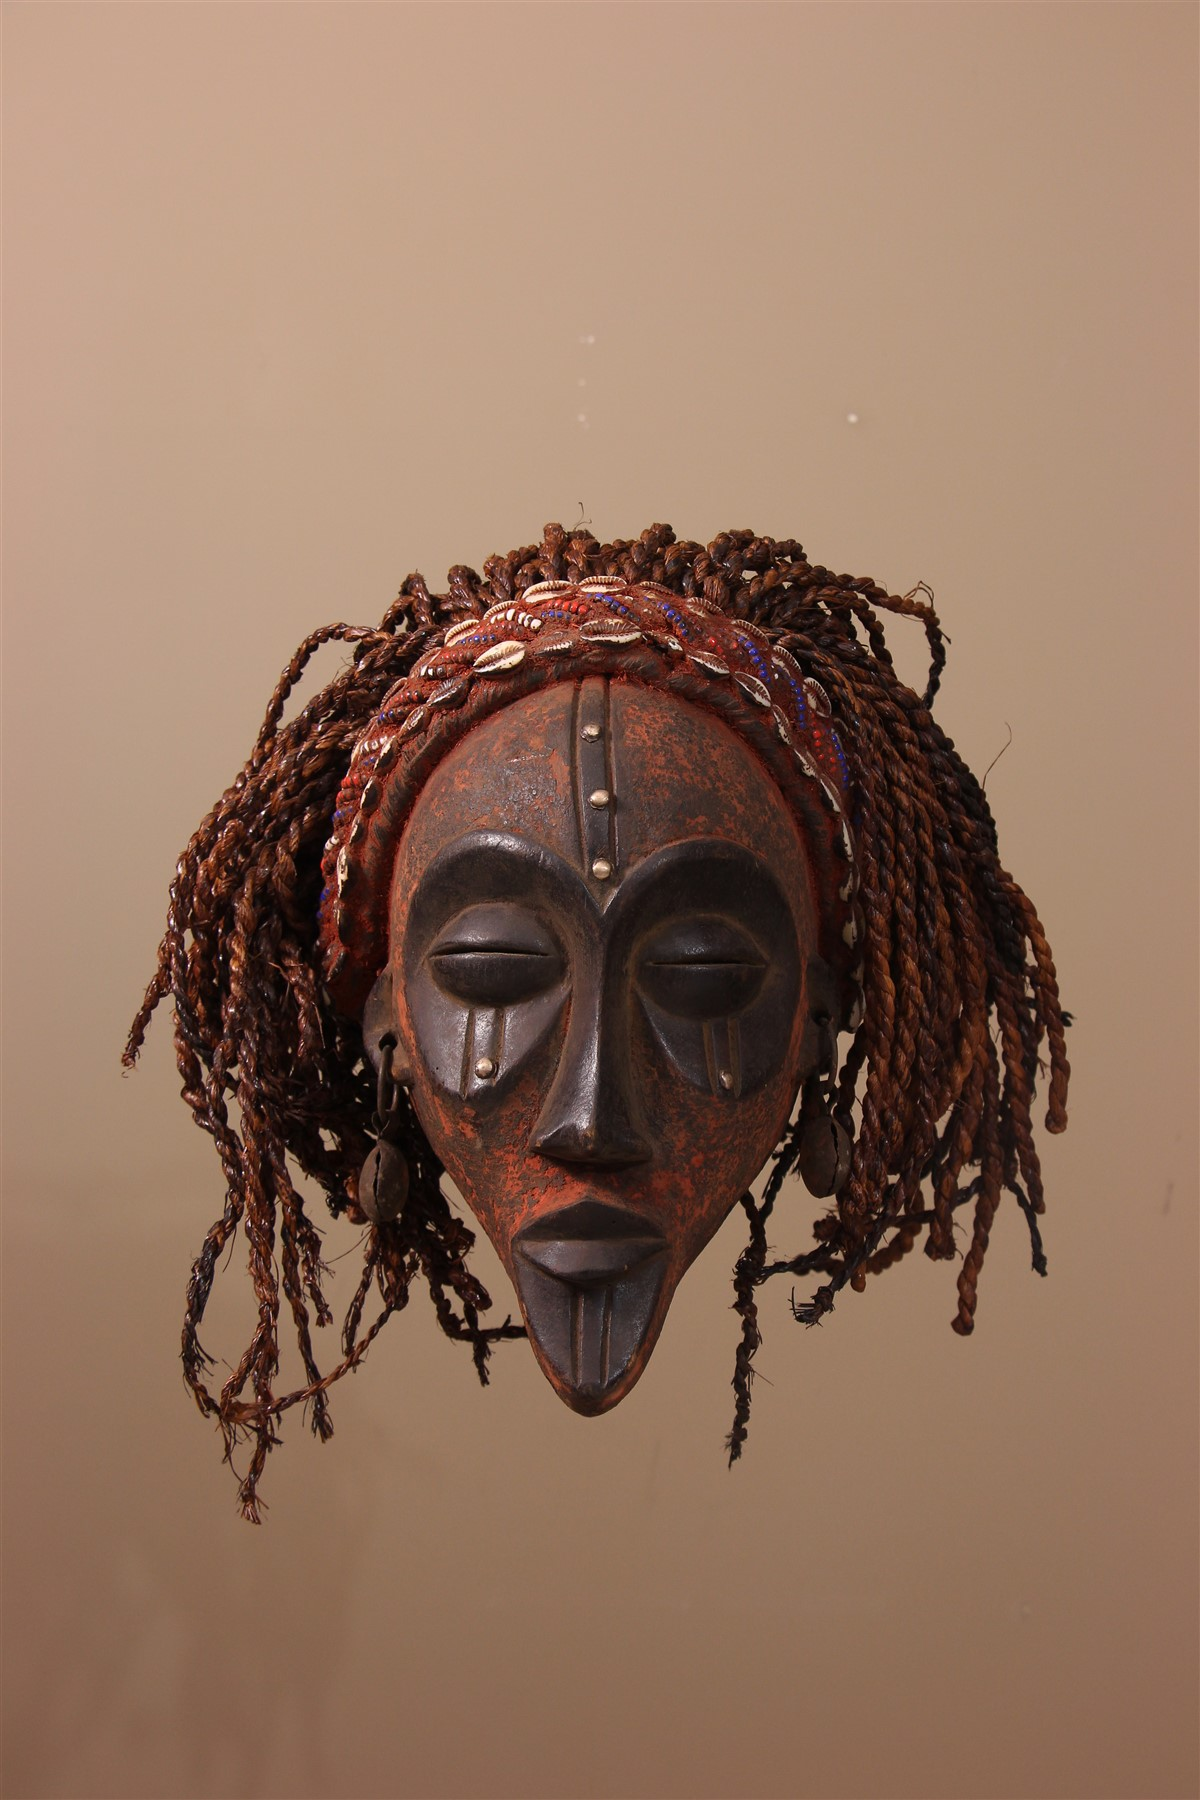 Masque africain Chokwe  - Déco africaine - Art africain traditionnel